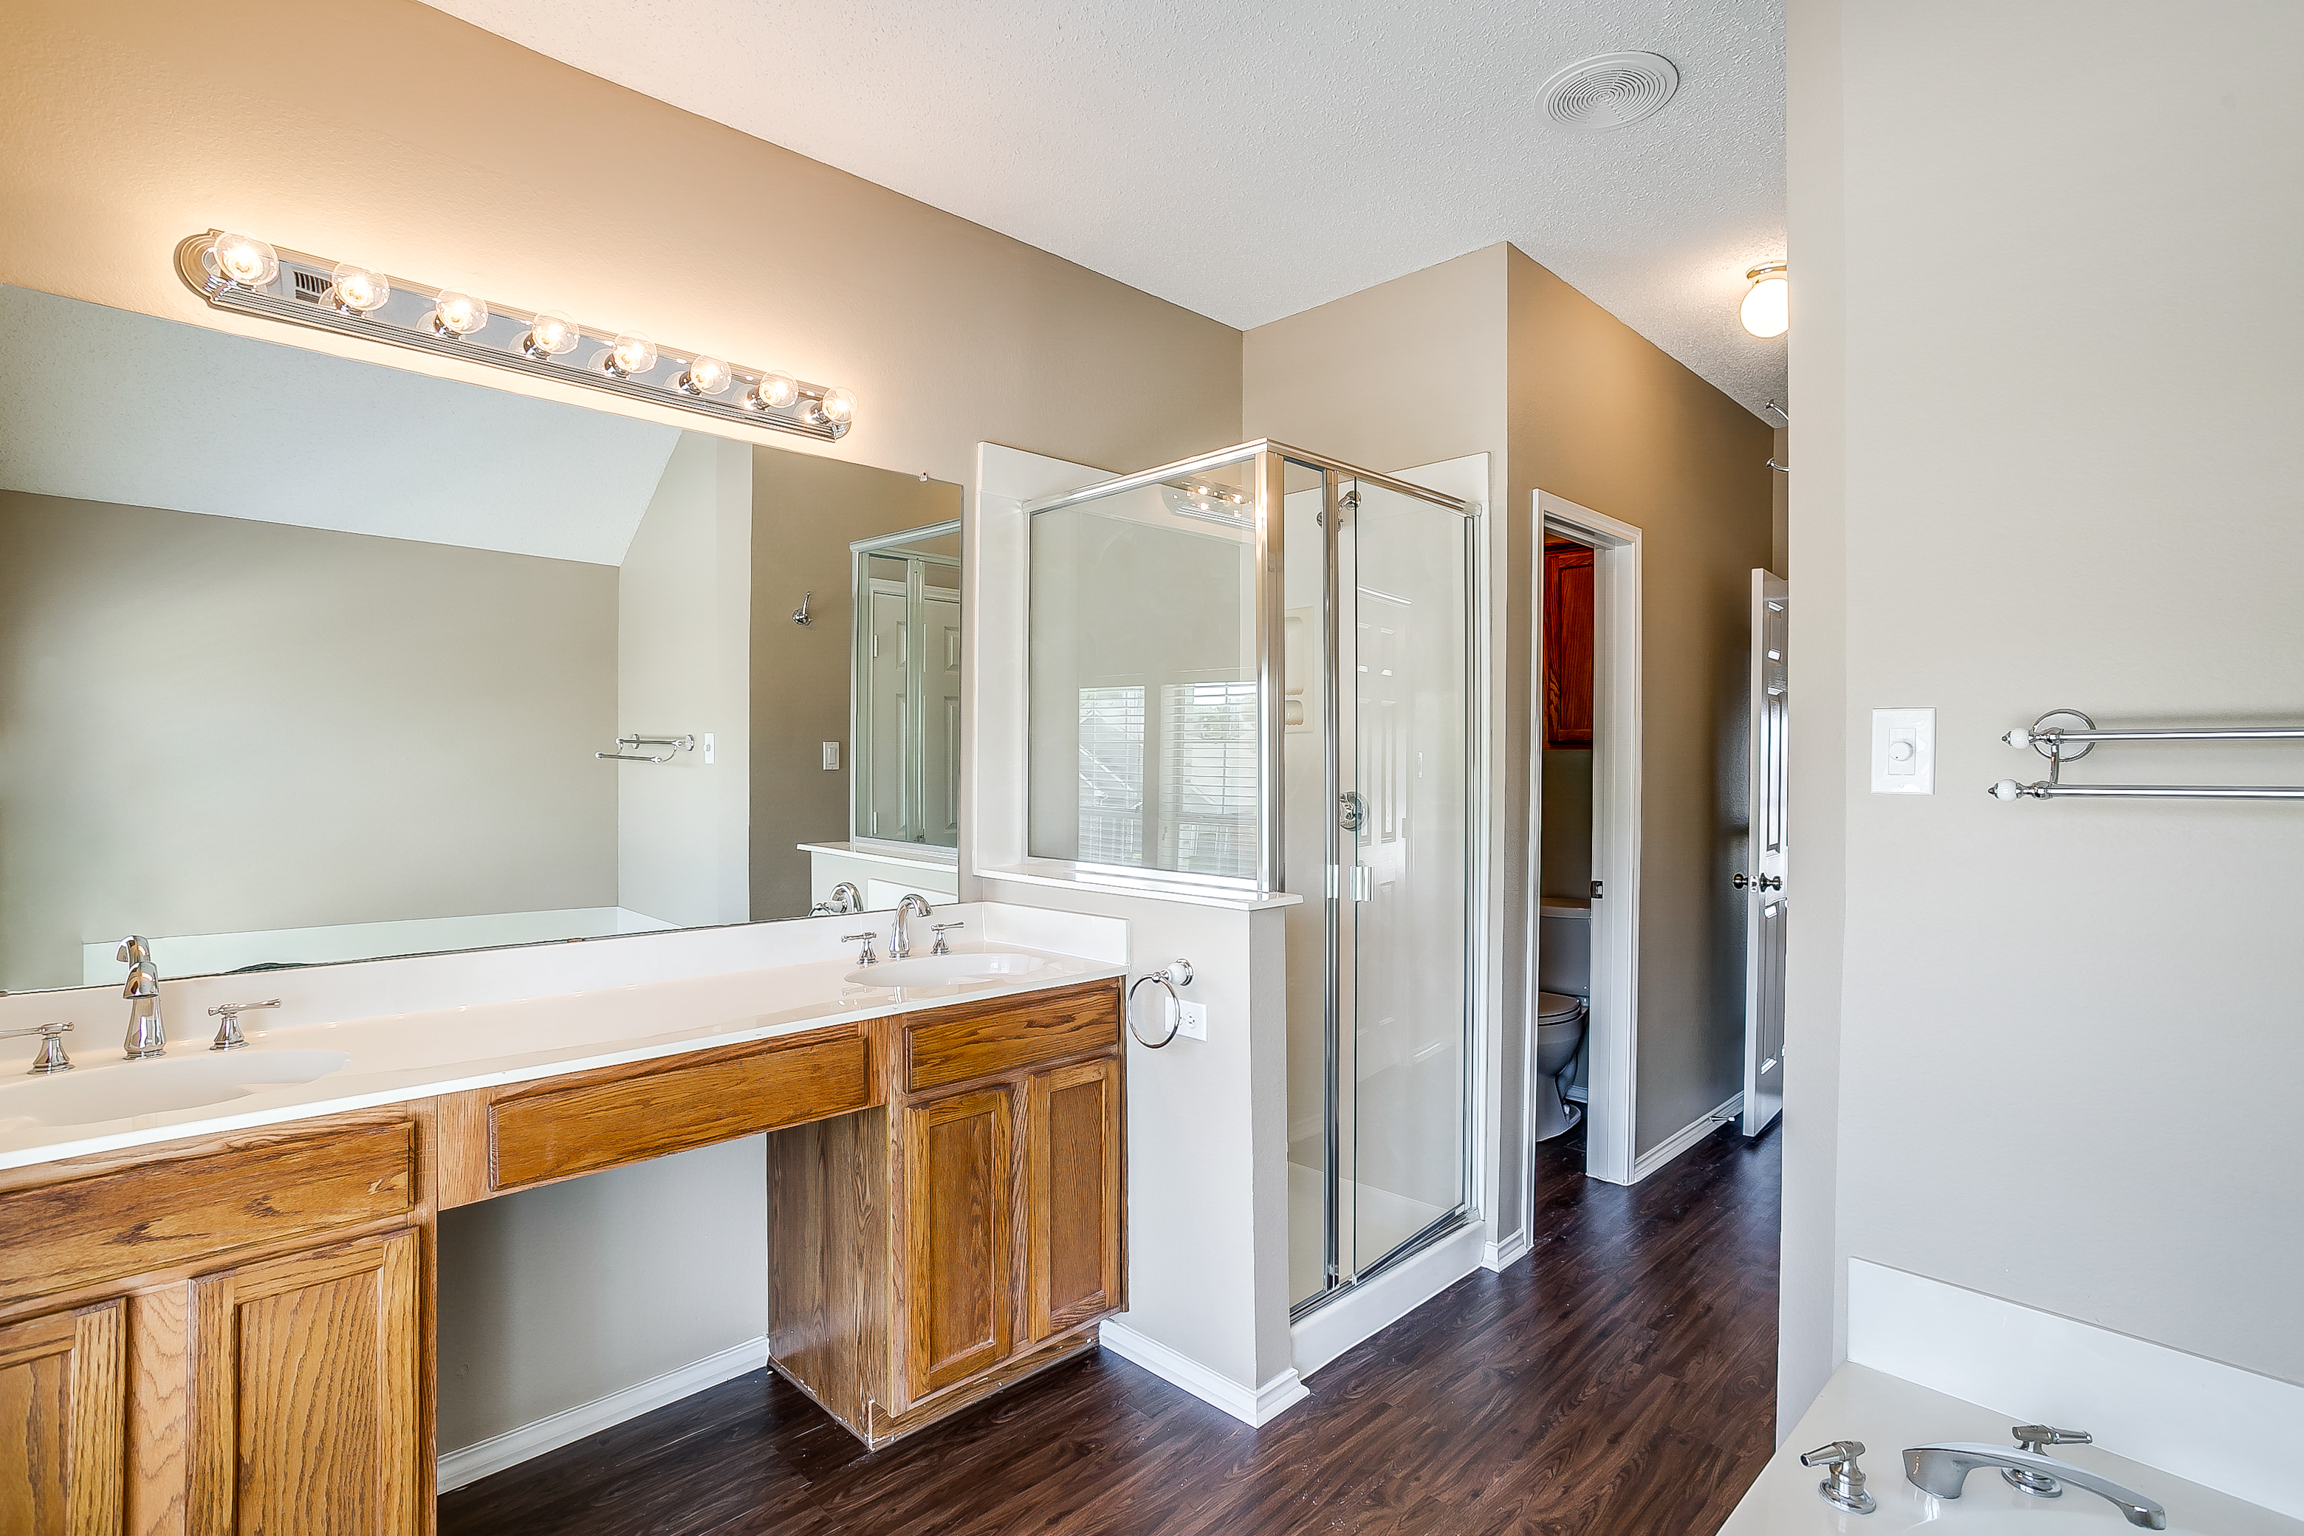 We can look after all your rental properties in Carrollton.